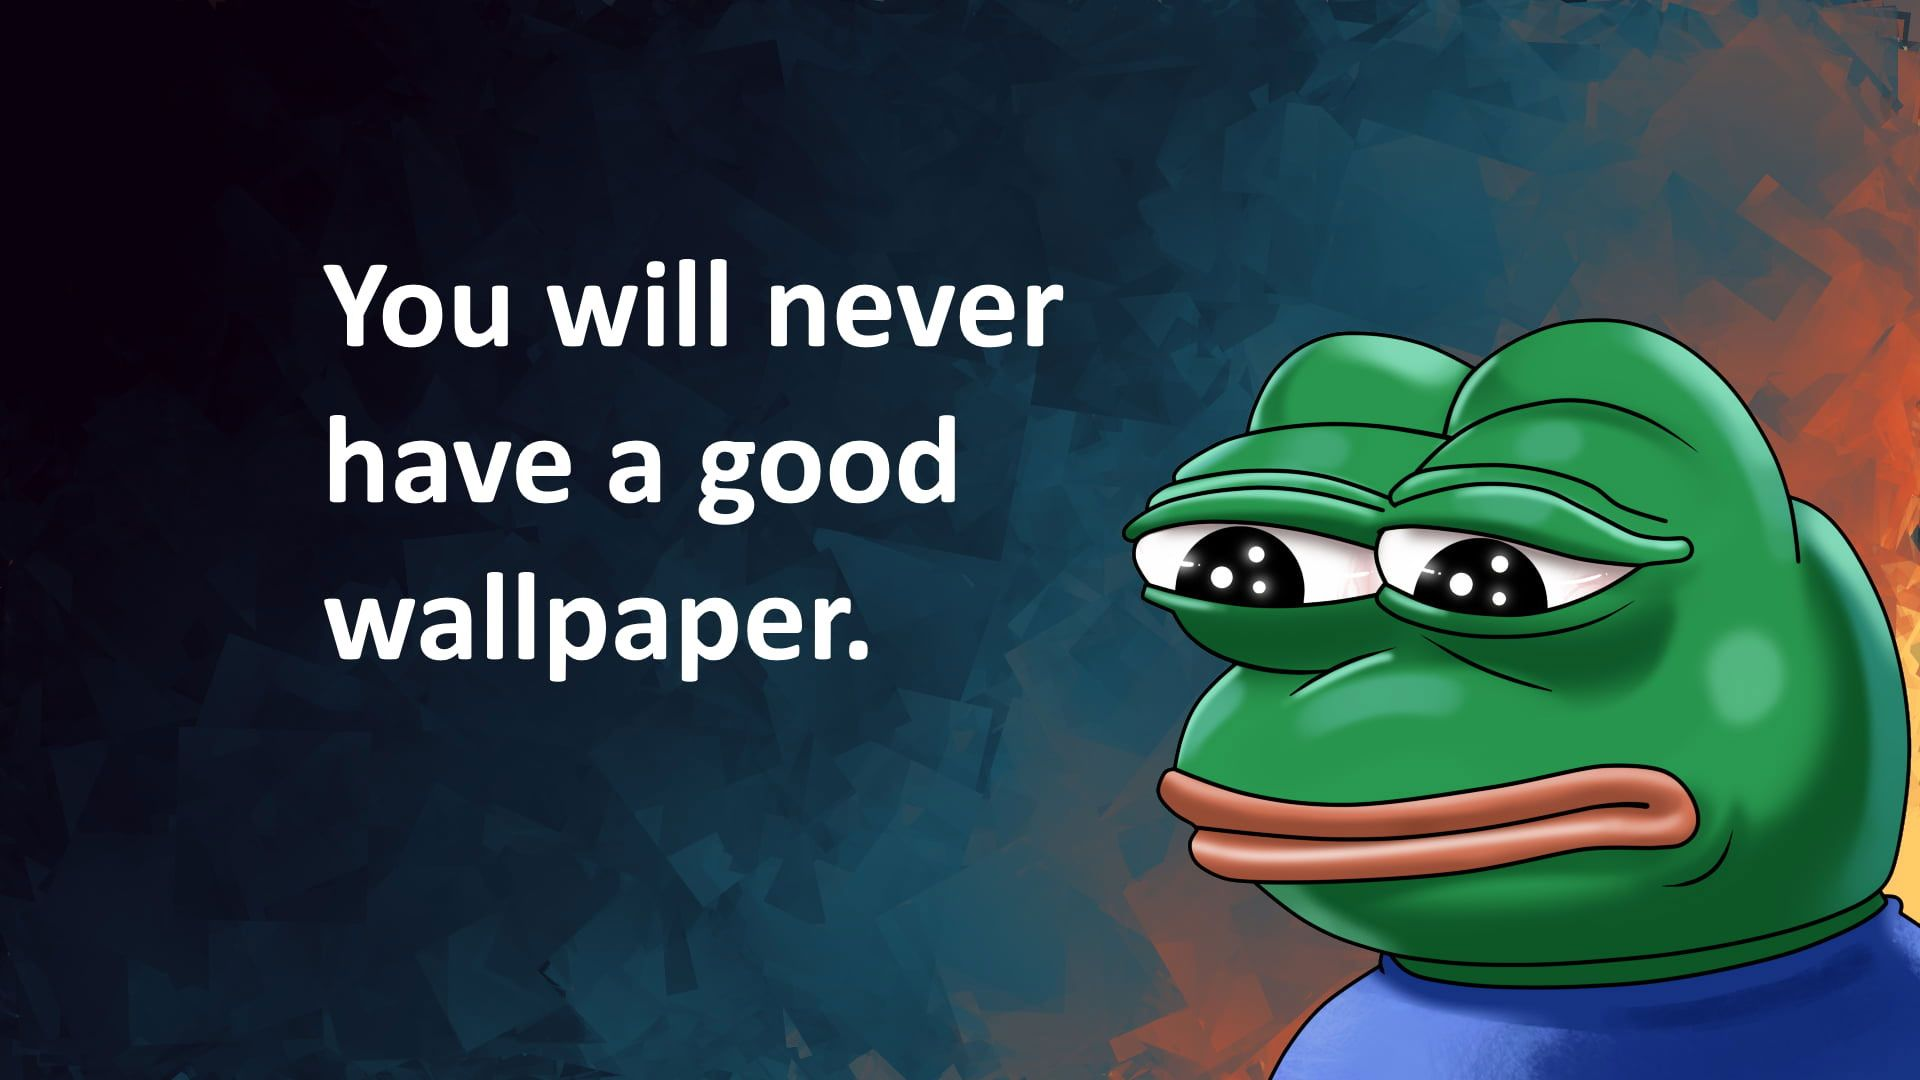 Green Frog With You Will Never Have A Good Wallpaper Feelsbadman Funny Phone Wallpaper Funny Wallpaper Frog Wallpaper